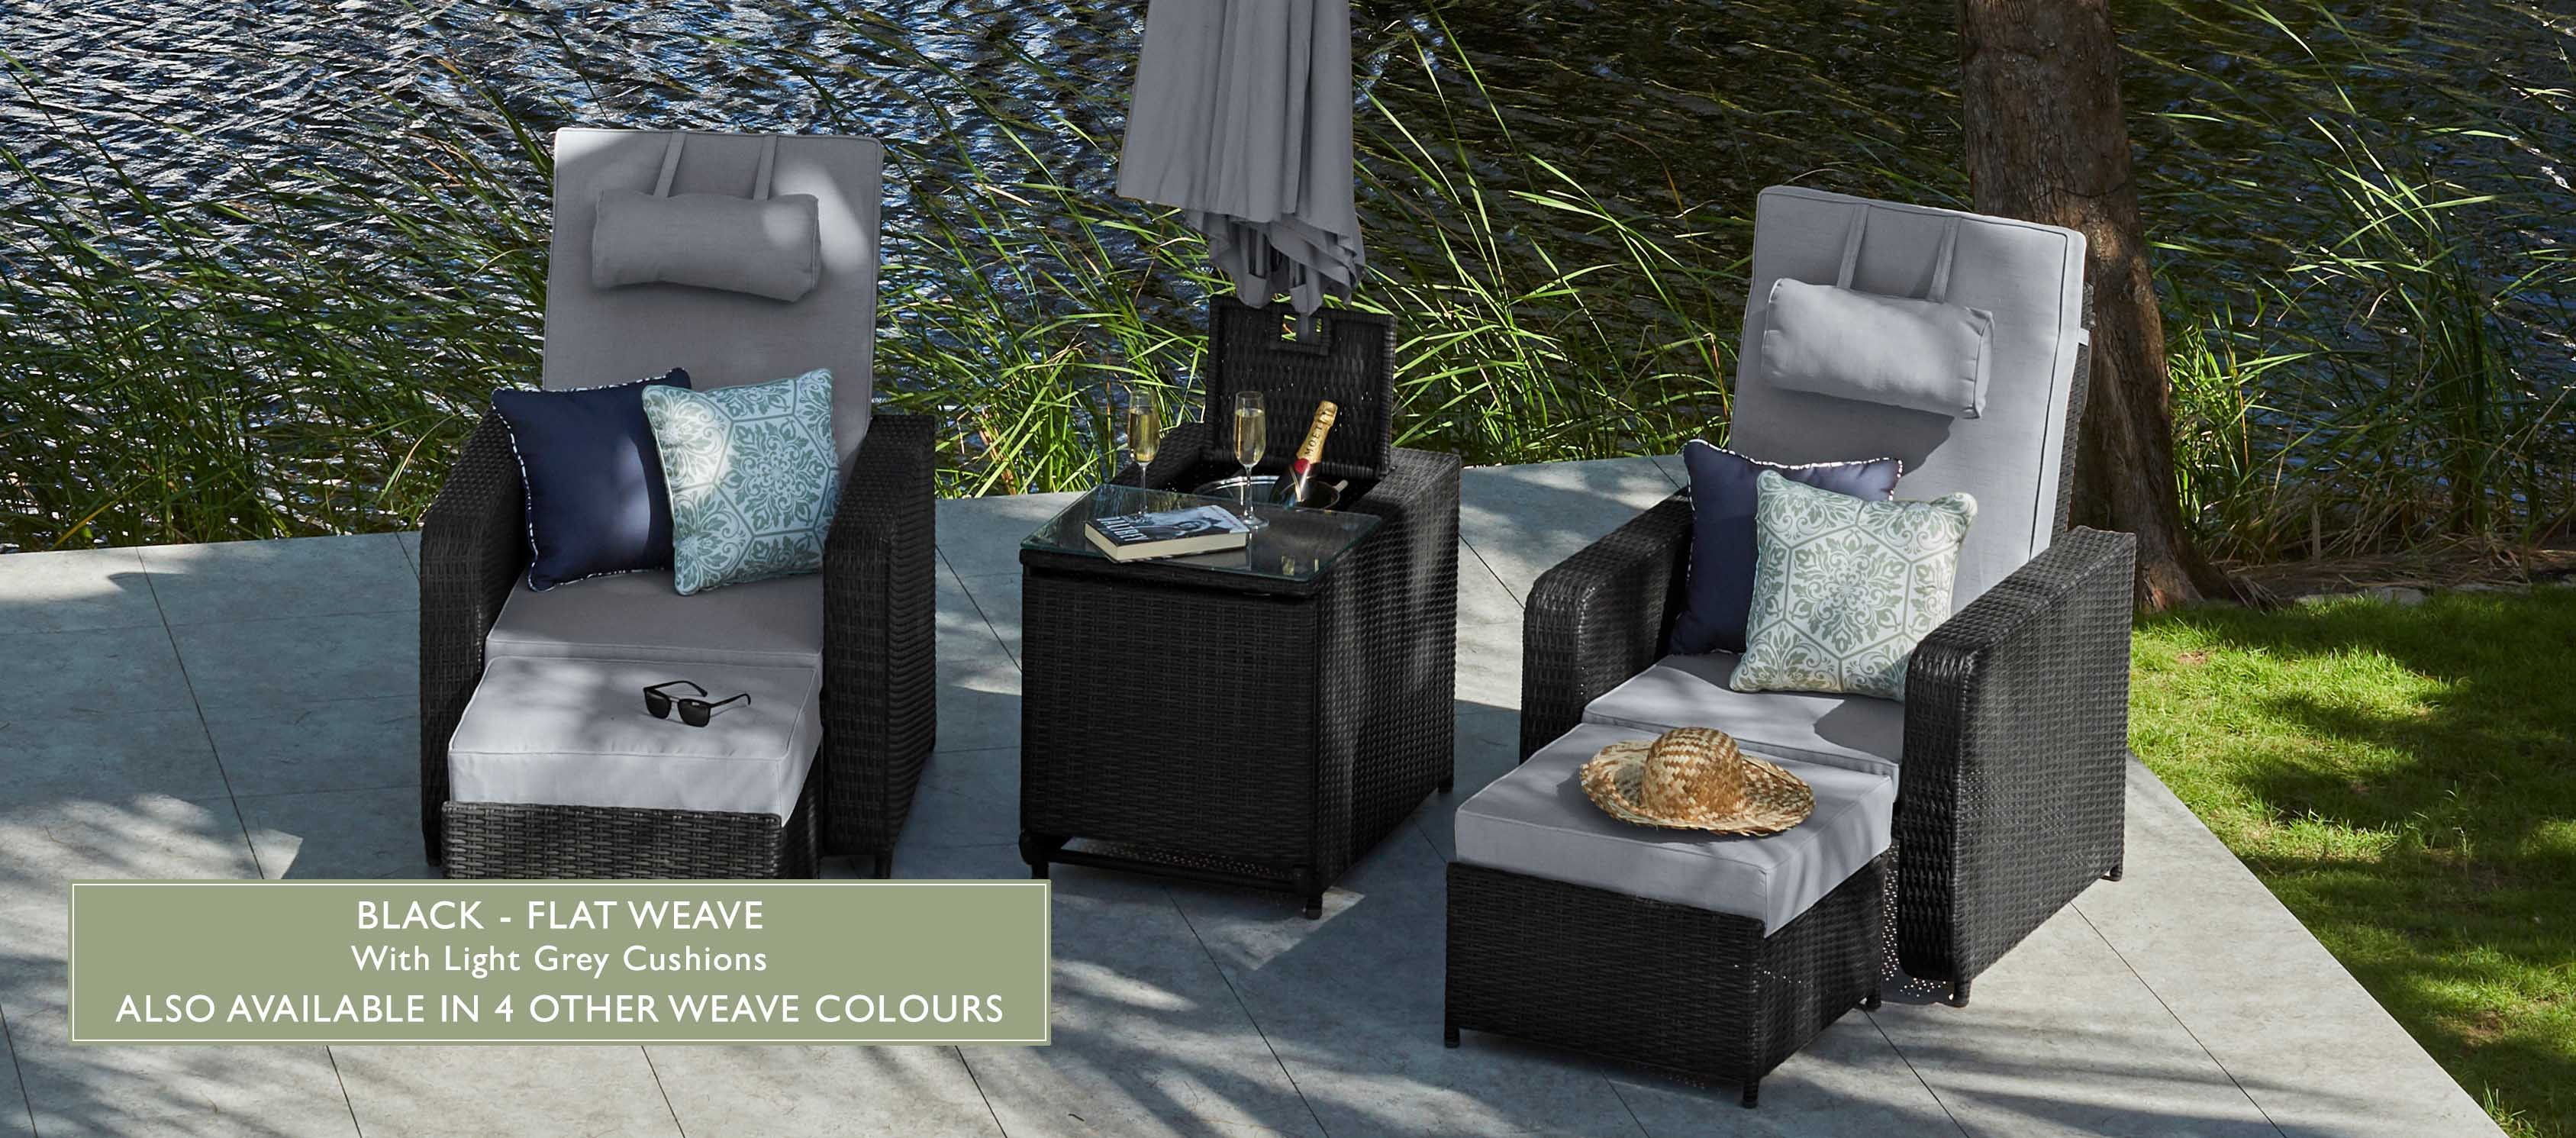 ALLEGRO - Reclining Sofa Chair, Daybed or Sunlounger ...